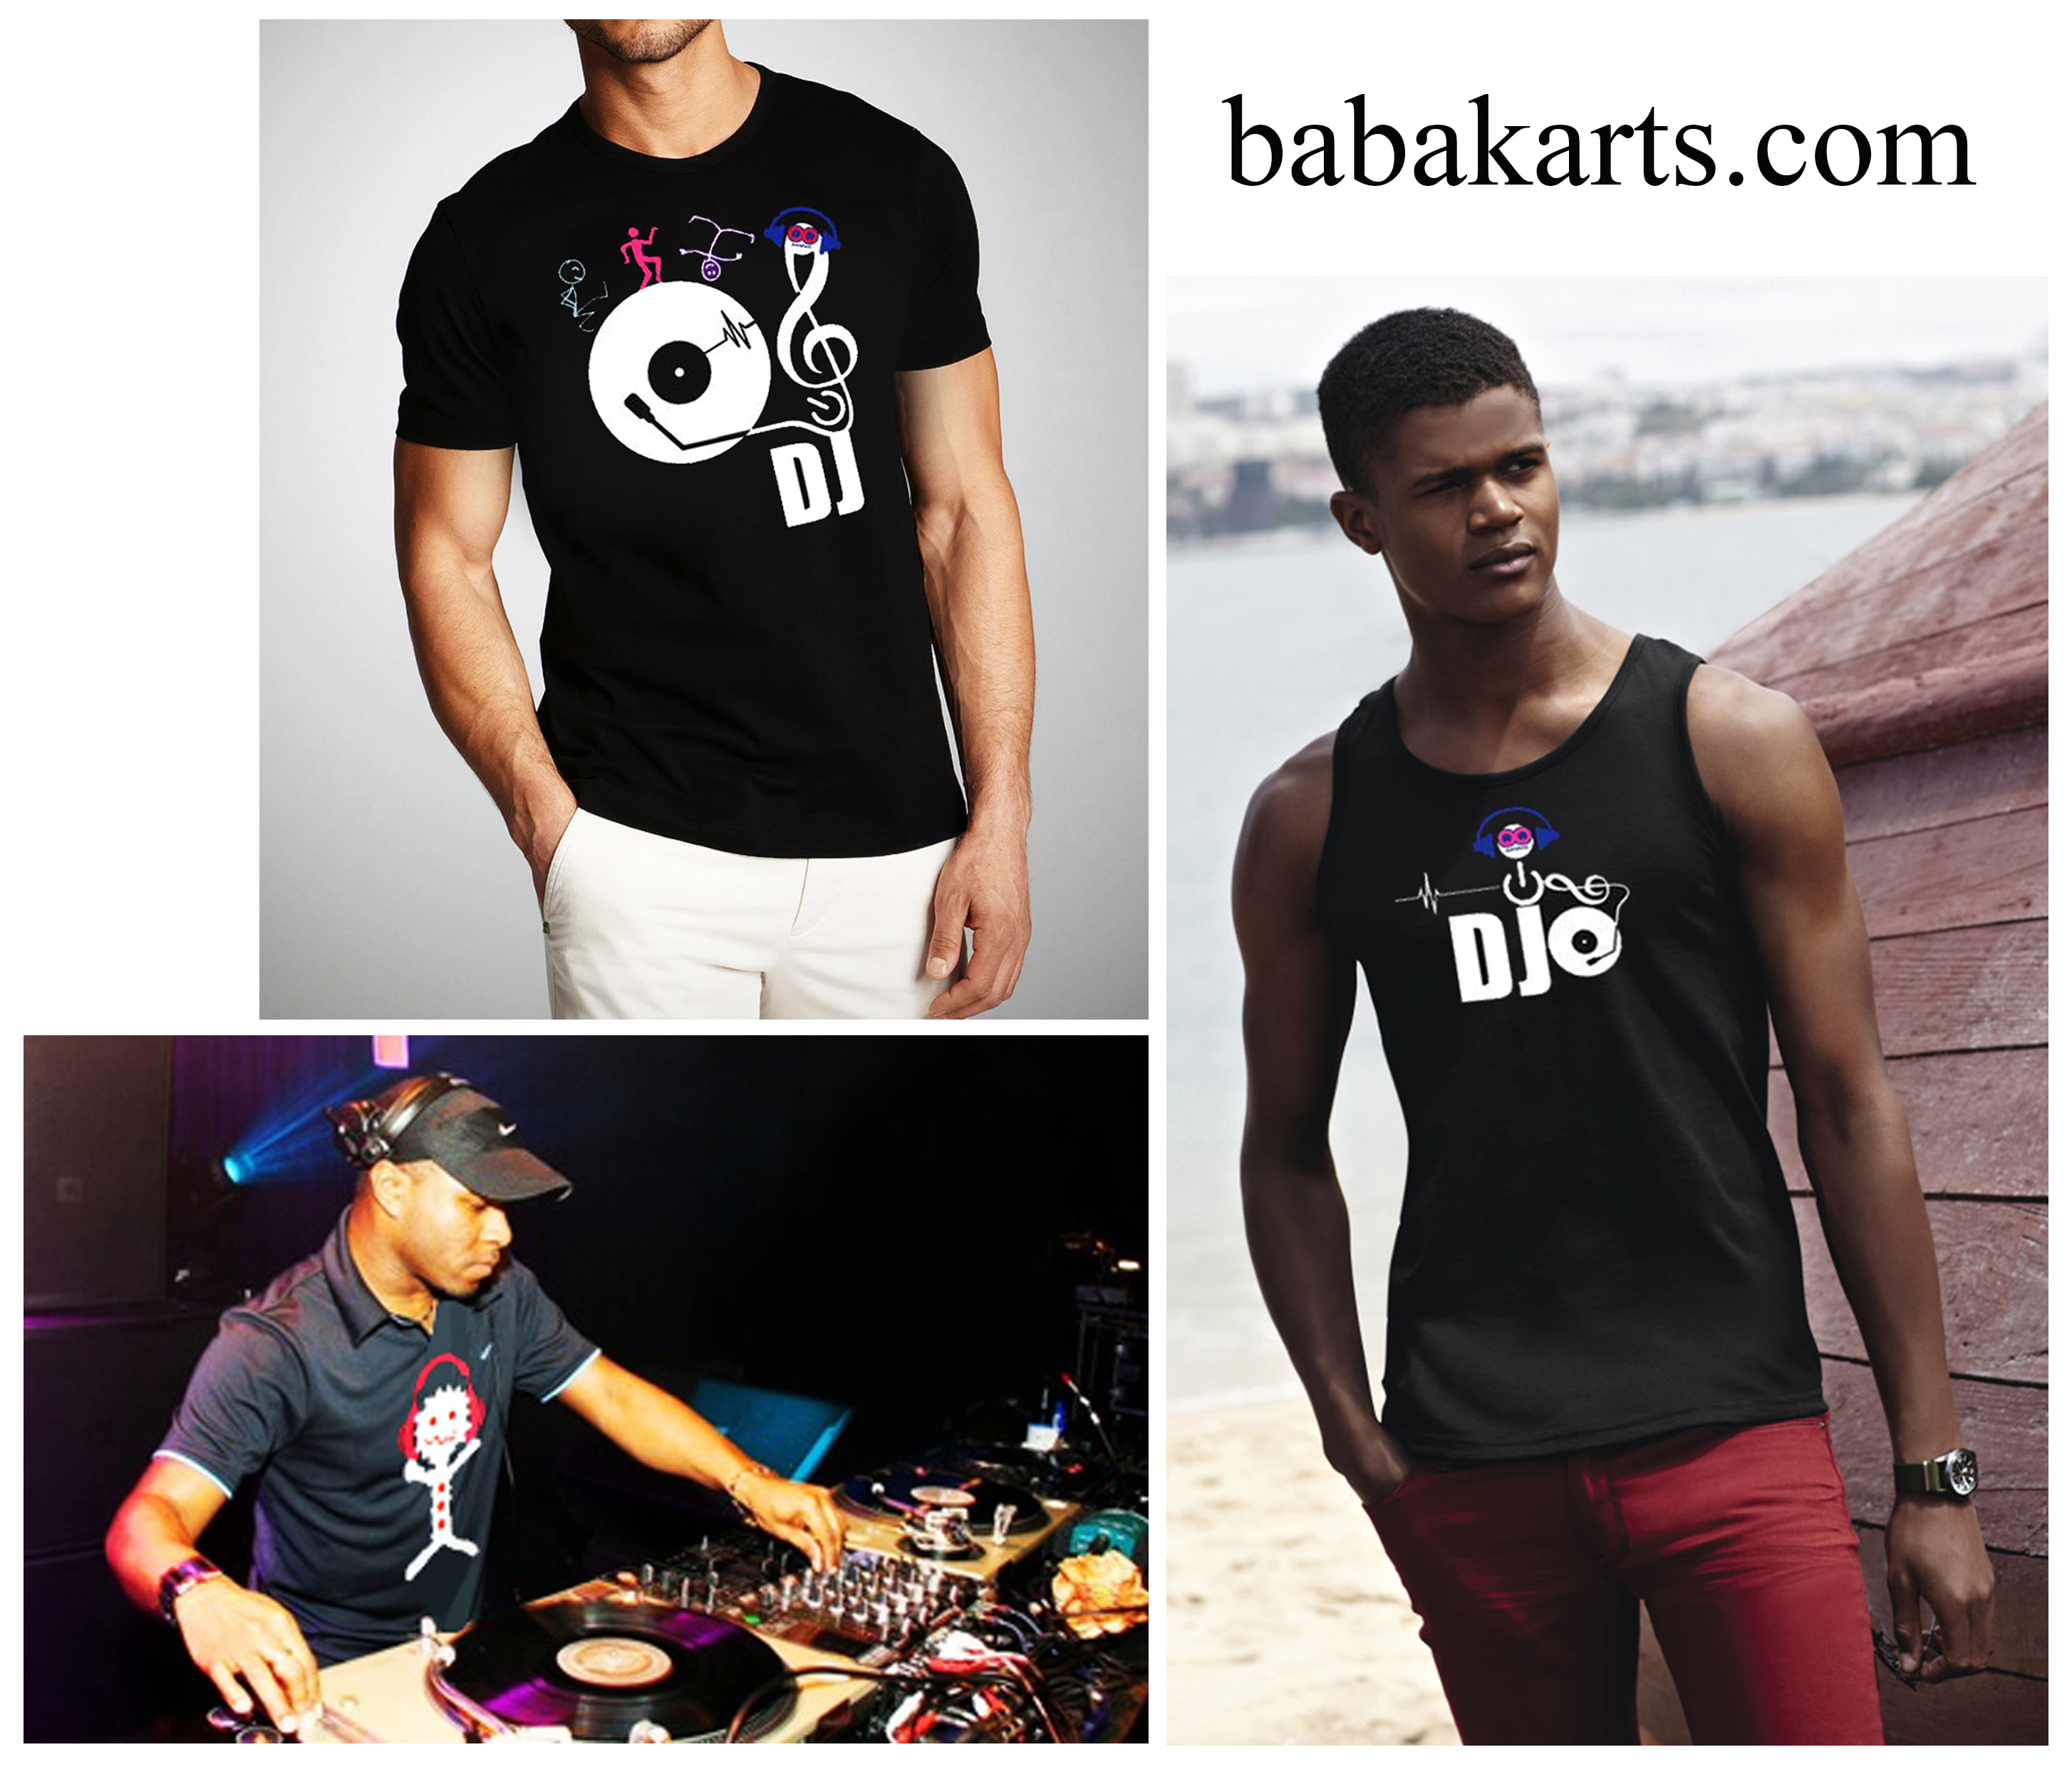 Dj by babak mobasheri -  babakarts - Fashion